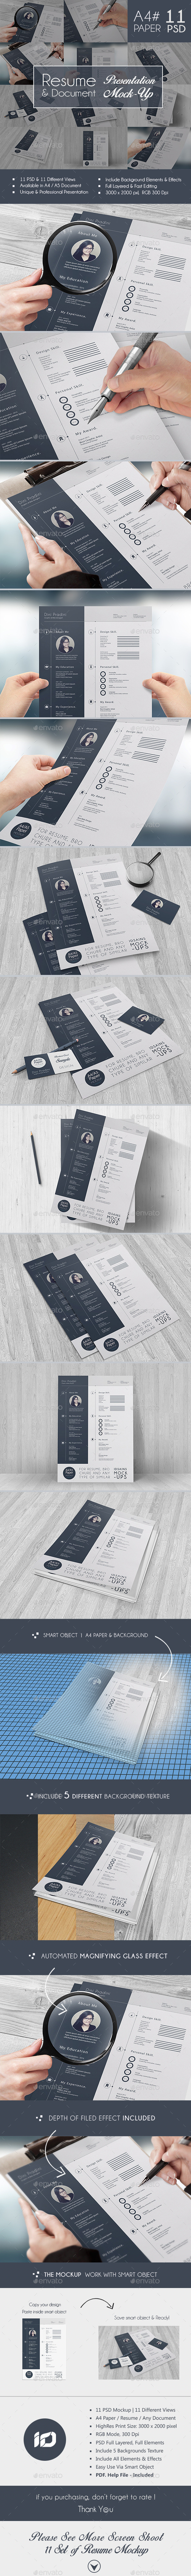 GraphicRiver CV Resume Mock-Up 9117259